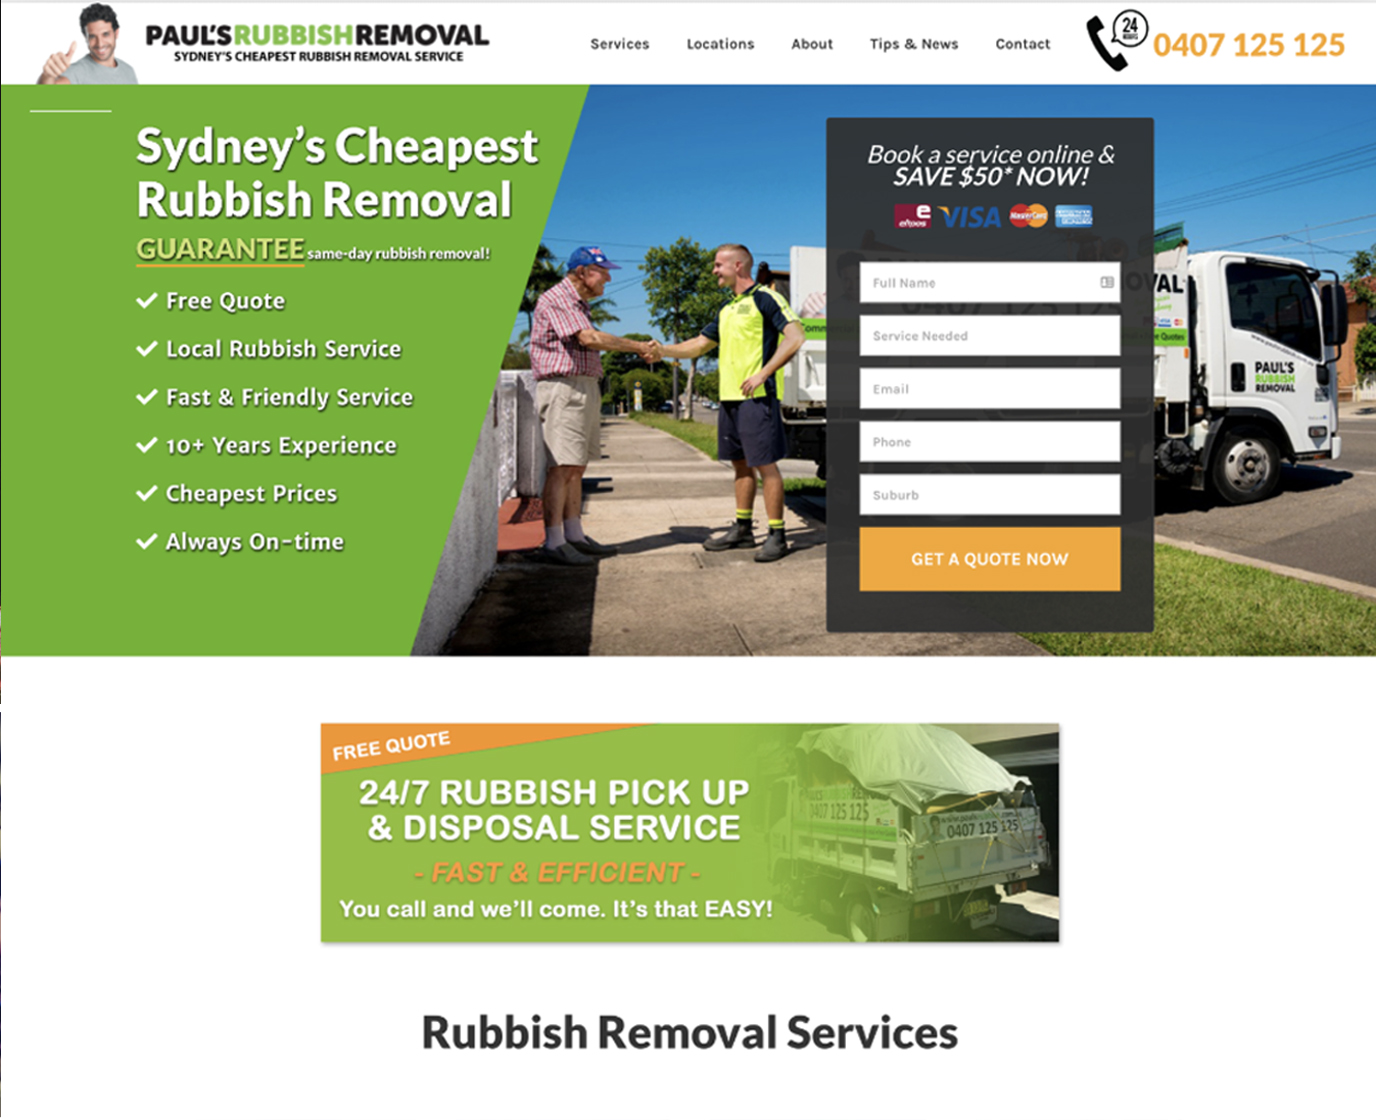 Paul's Rubbish Removal Sydney